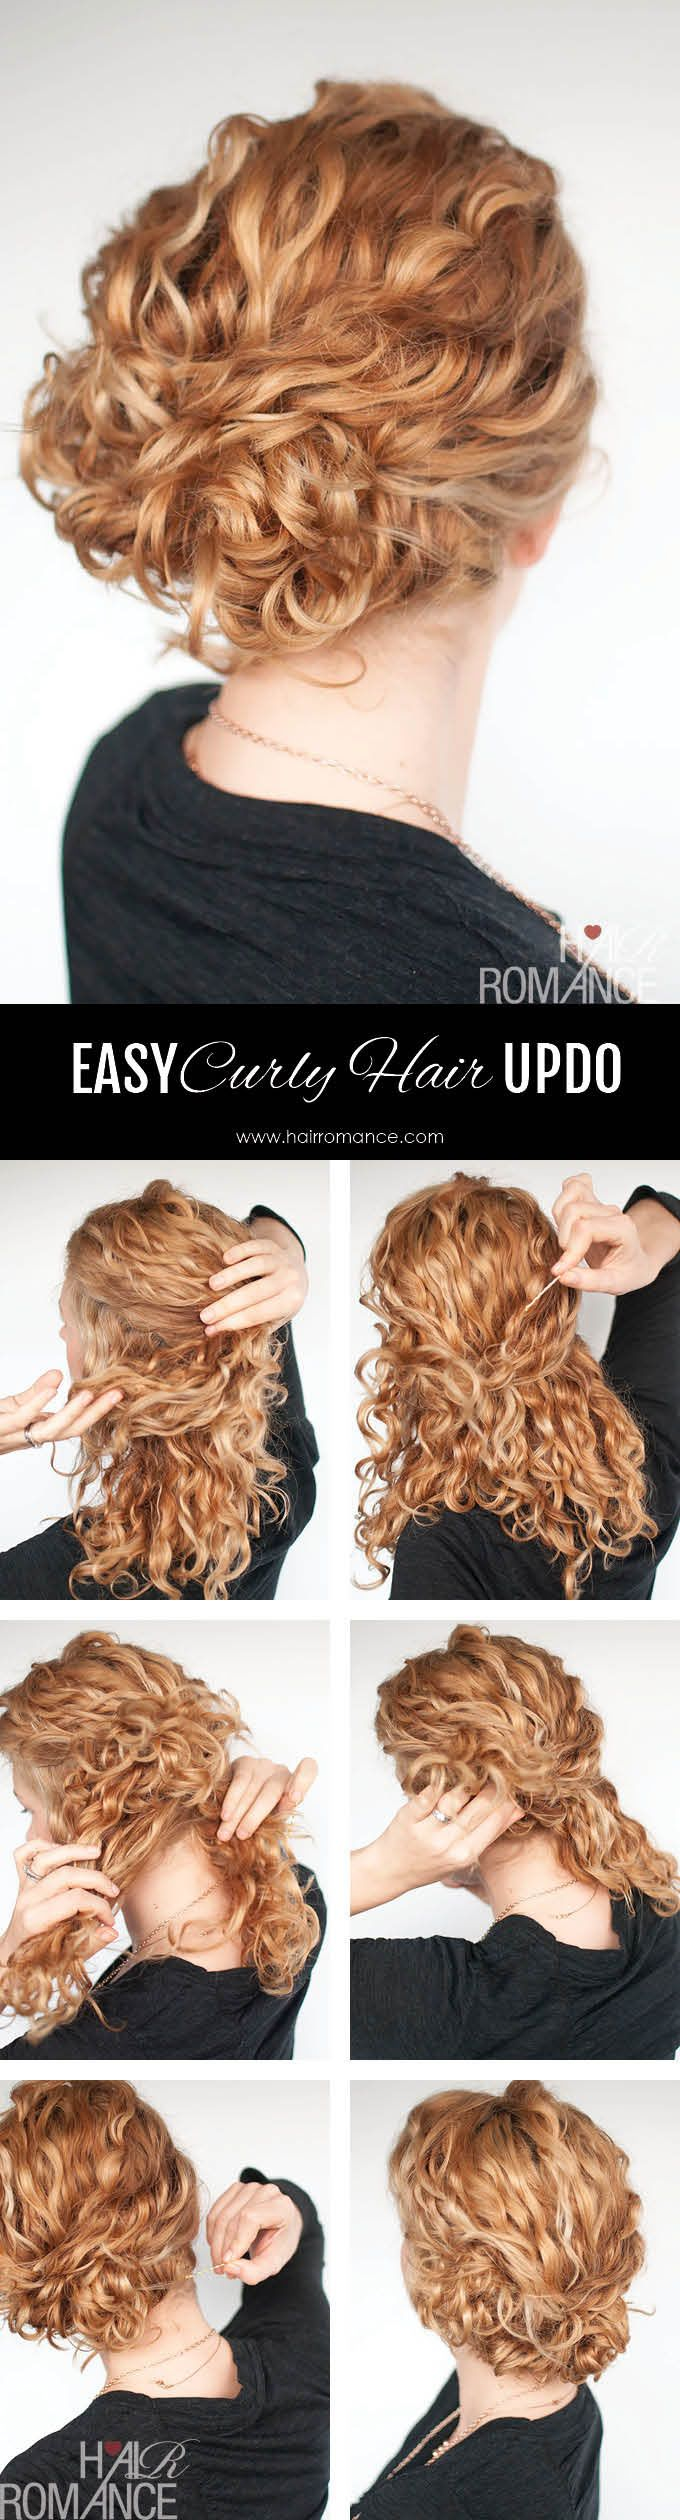 Best 25 curly updo hairstyles ideas on pinterest diy hair updo hair romance curly hair tutorial easy curly updo yesssss this will do fine pmusecretfo Choice Image